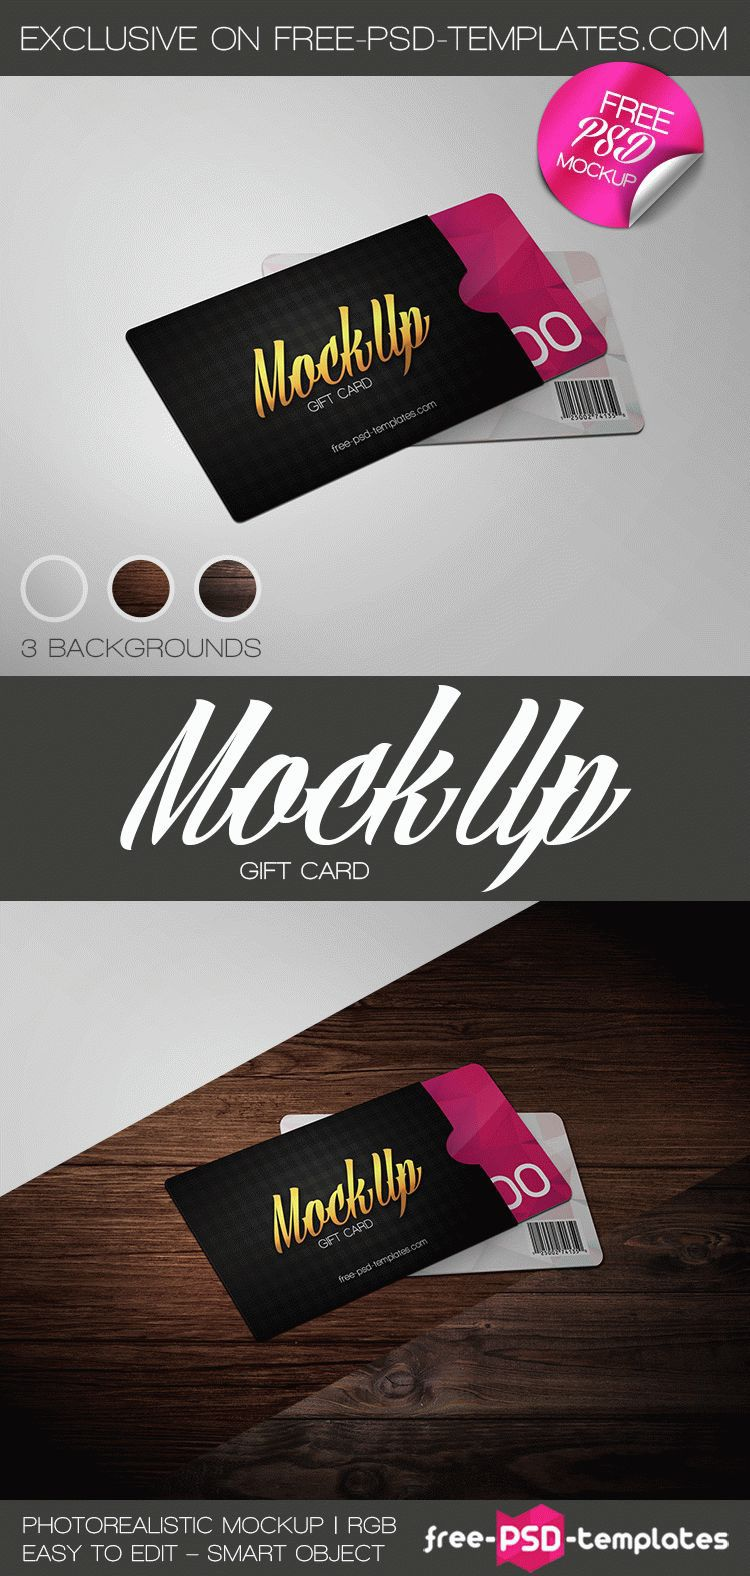 001 Simple Gift Card Template Psd Image  Christma Photoshop Free HolderFull